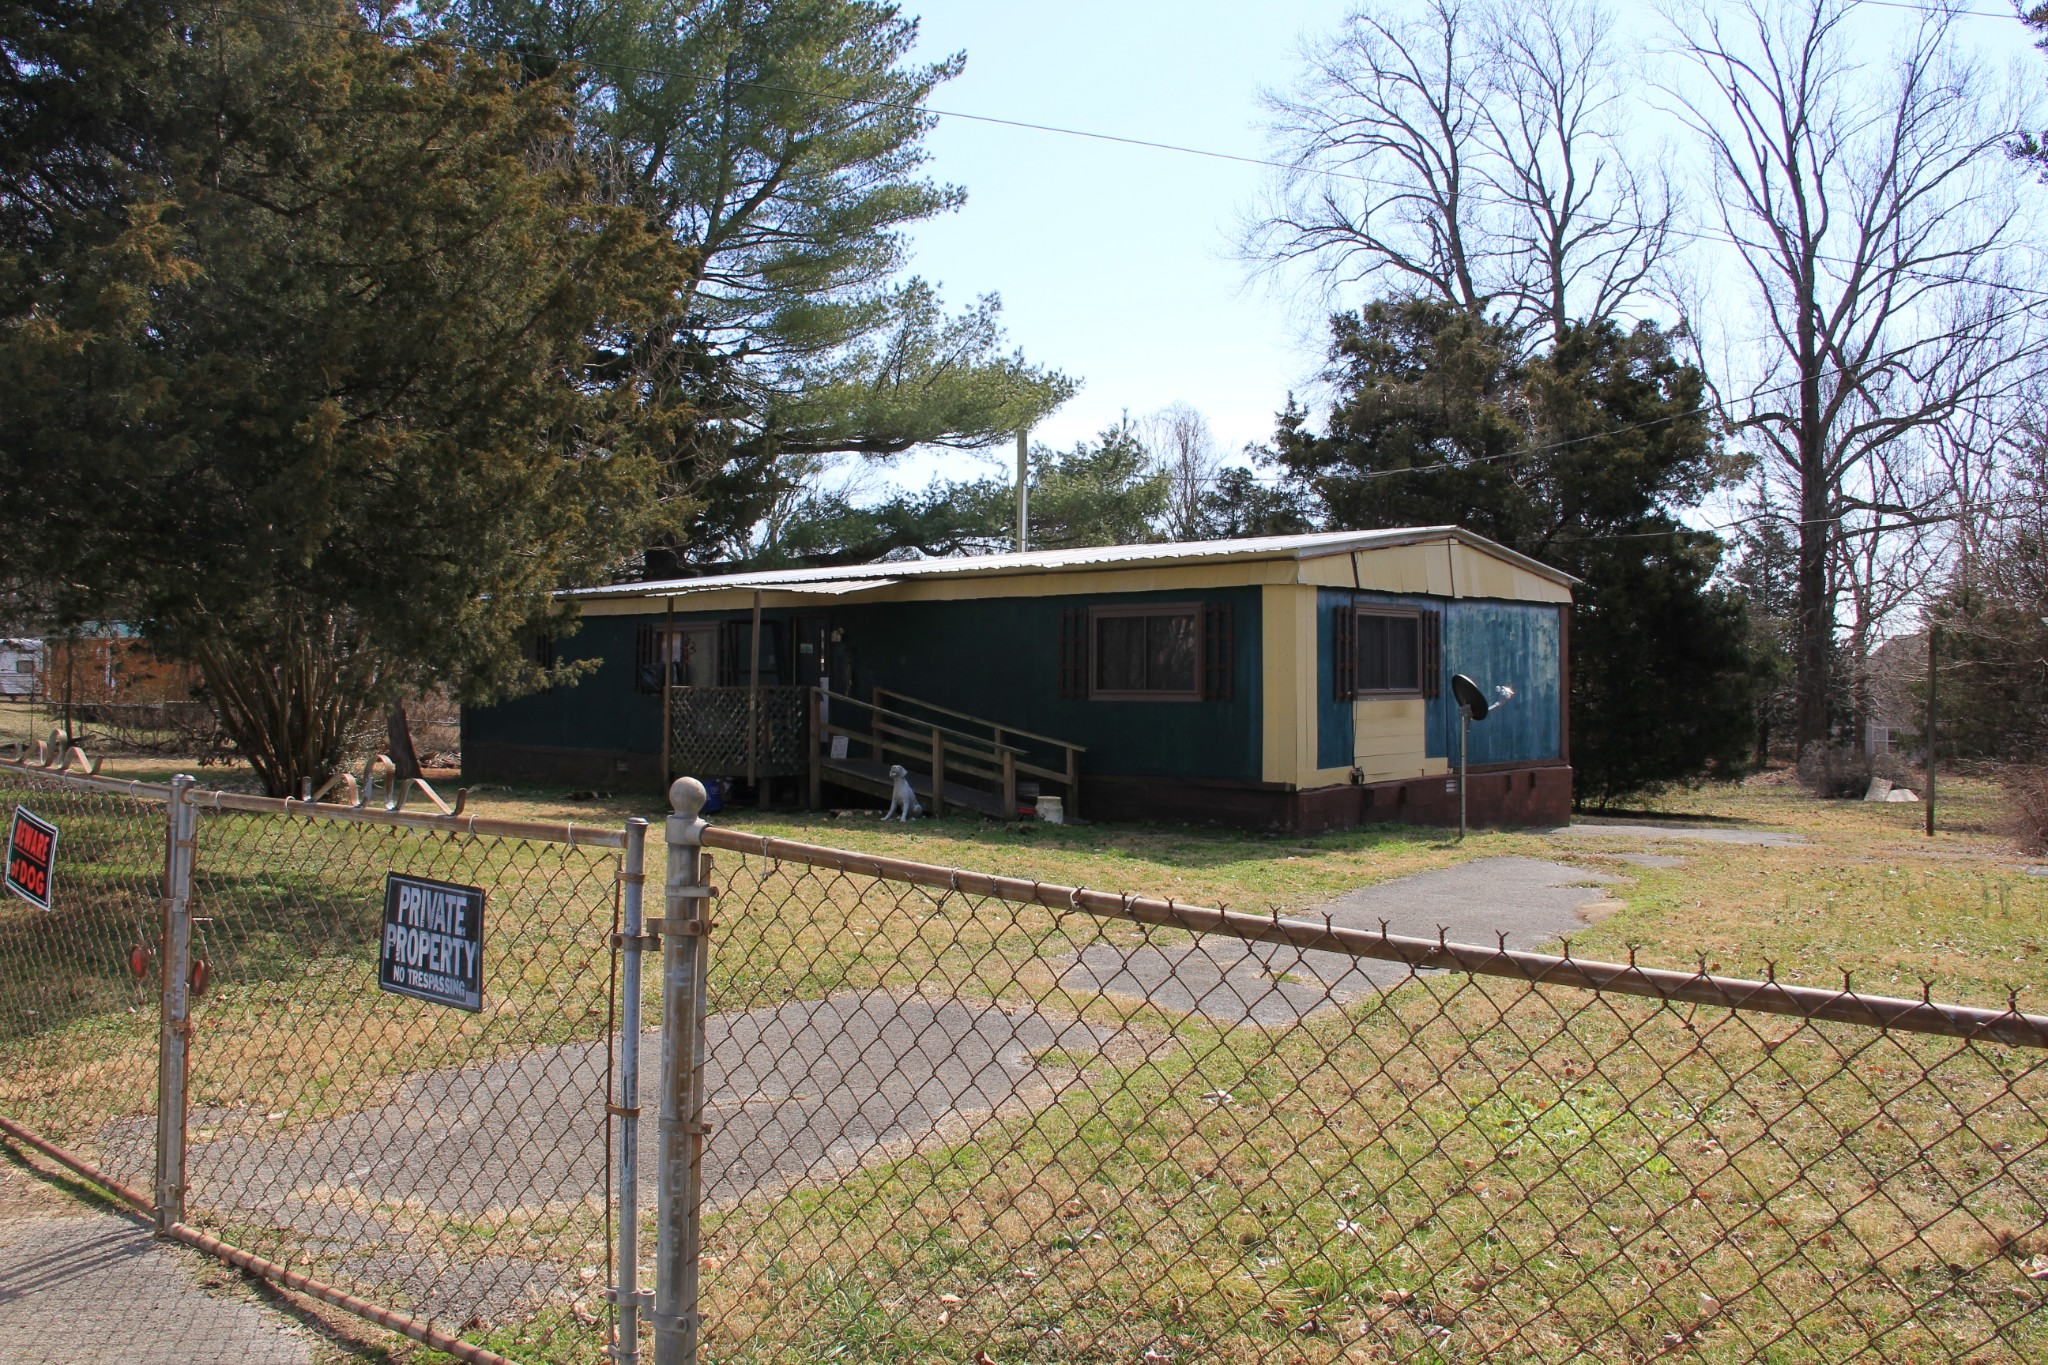 This 3 bedroom 2 bath mobile home is being sold AS-IS, seller will not make repairs.  TLC needed if you are handy it all minor fixes and it sits on a beautiful 1.12 acre lot! Fenced in with shed and privacy, with all that's going on in today's market this is a perfect alternative to multiple offers!  Or consider this an investment property where you can get in quick and potentially lease after construction of a new home in the area, the possibilities are limitless!  BUY THIS HOME!